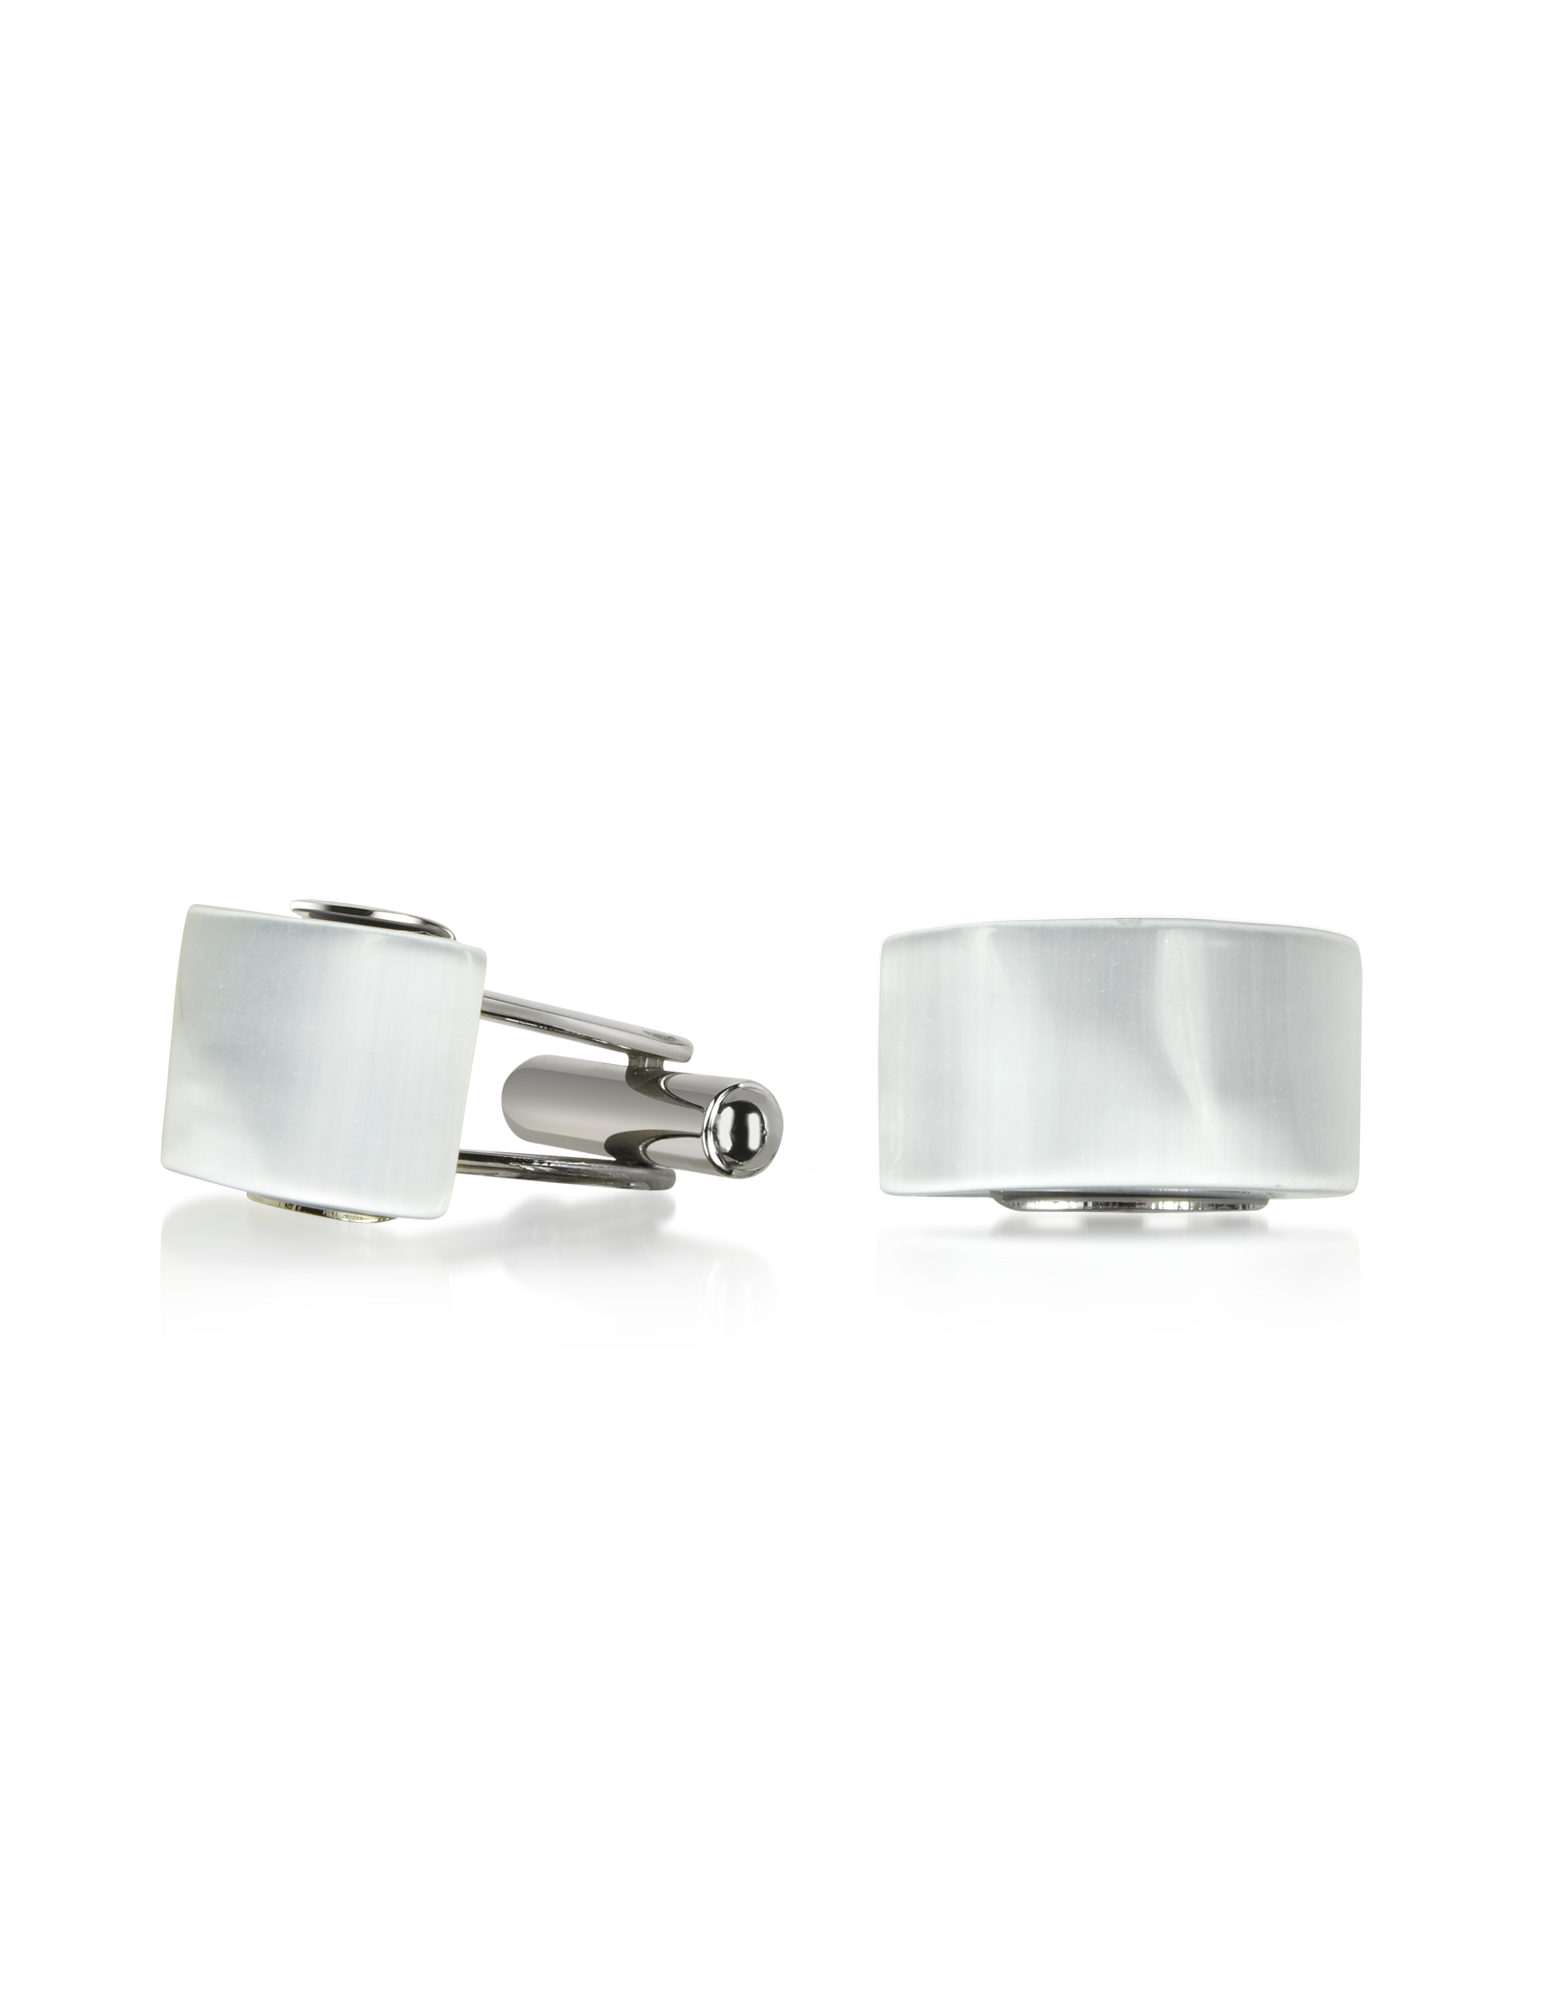 Image of Cat's eye - White/Pearl Stone Curved Cufflinks